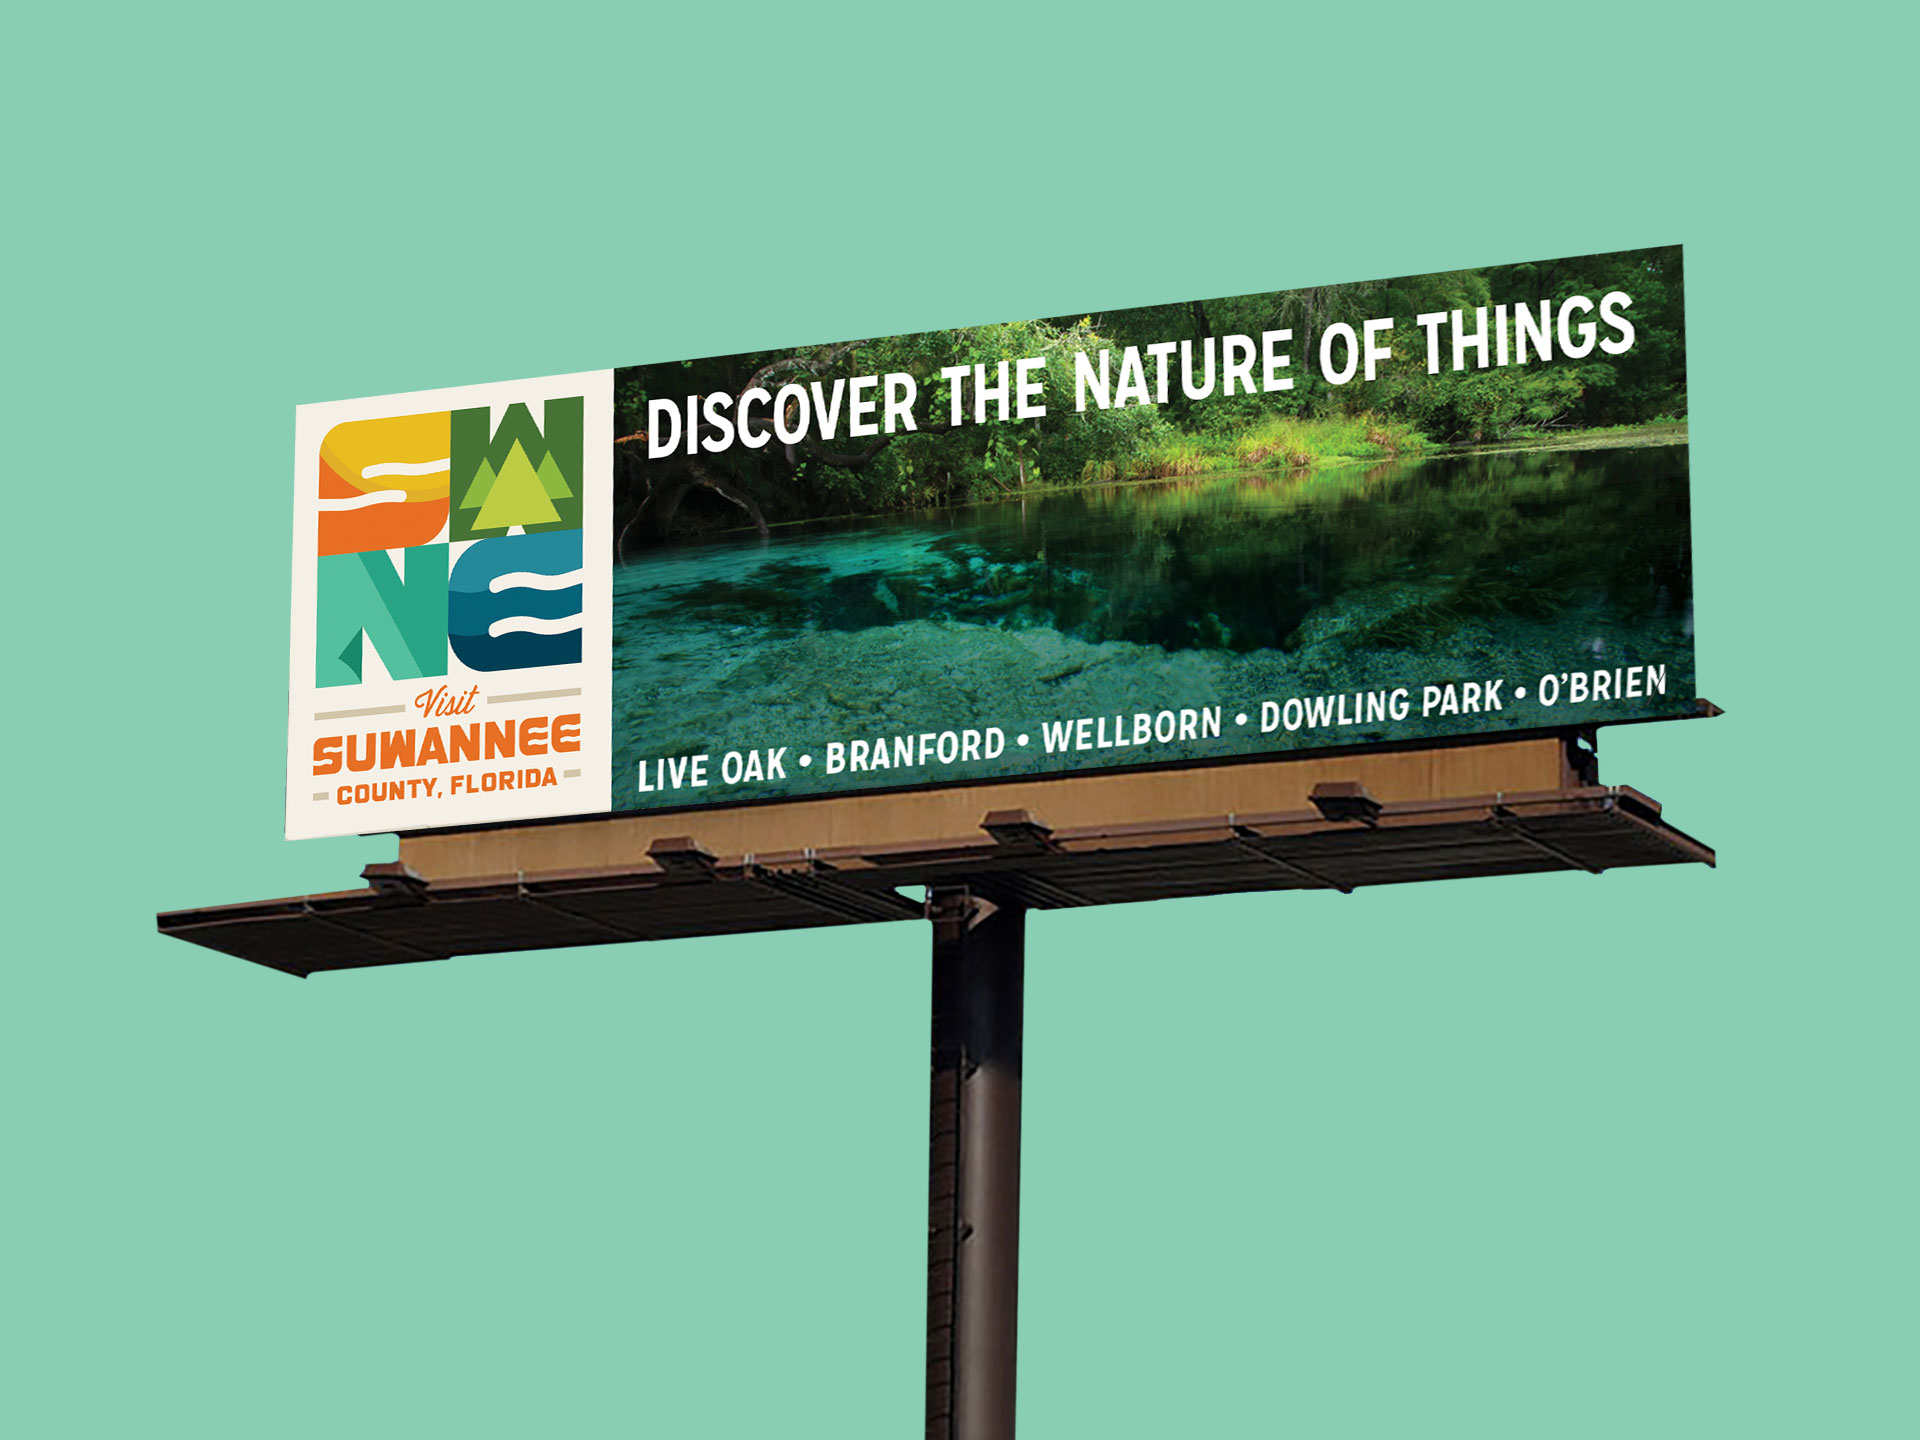 suwannee county billboard